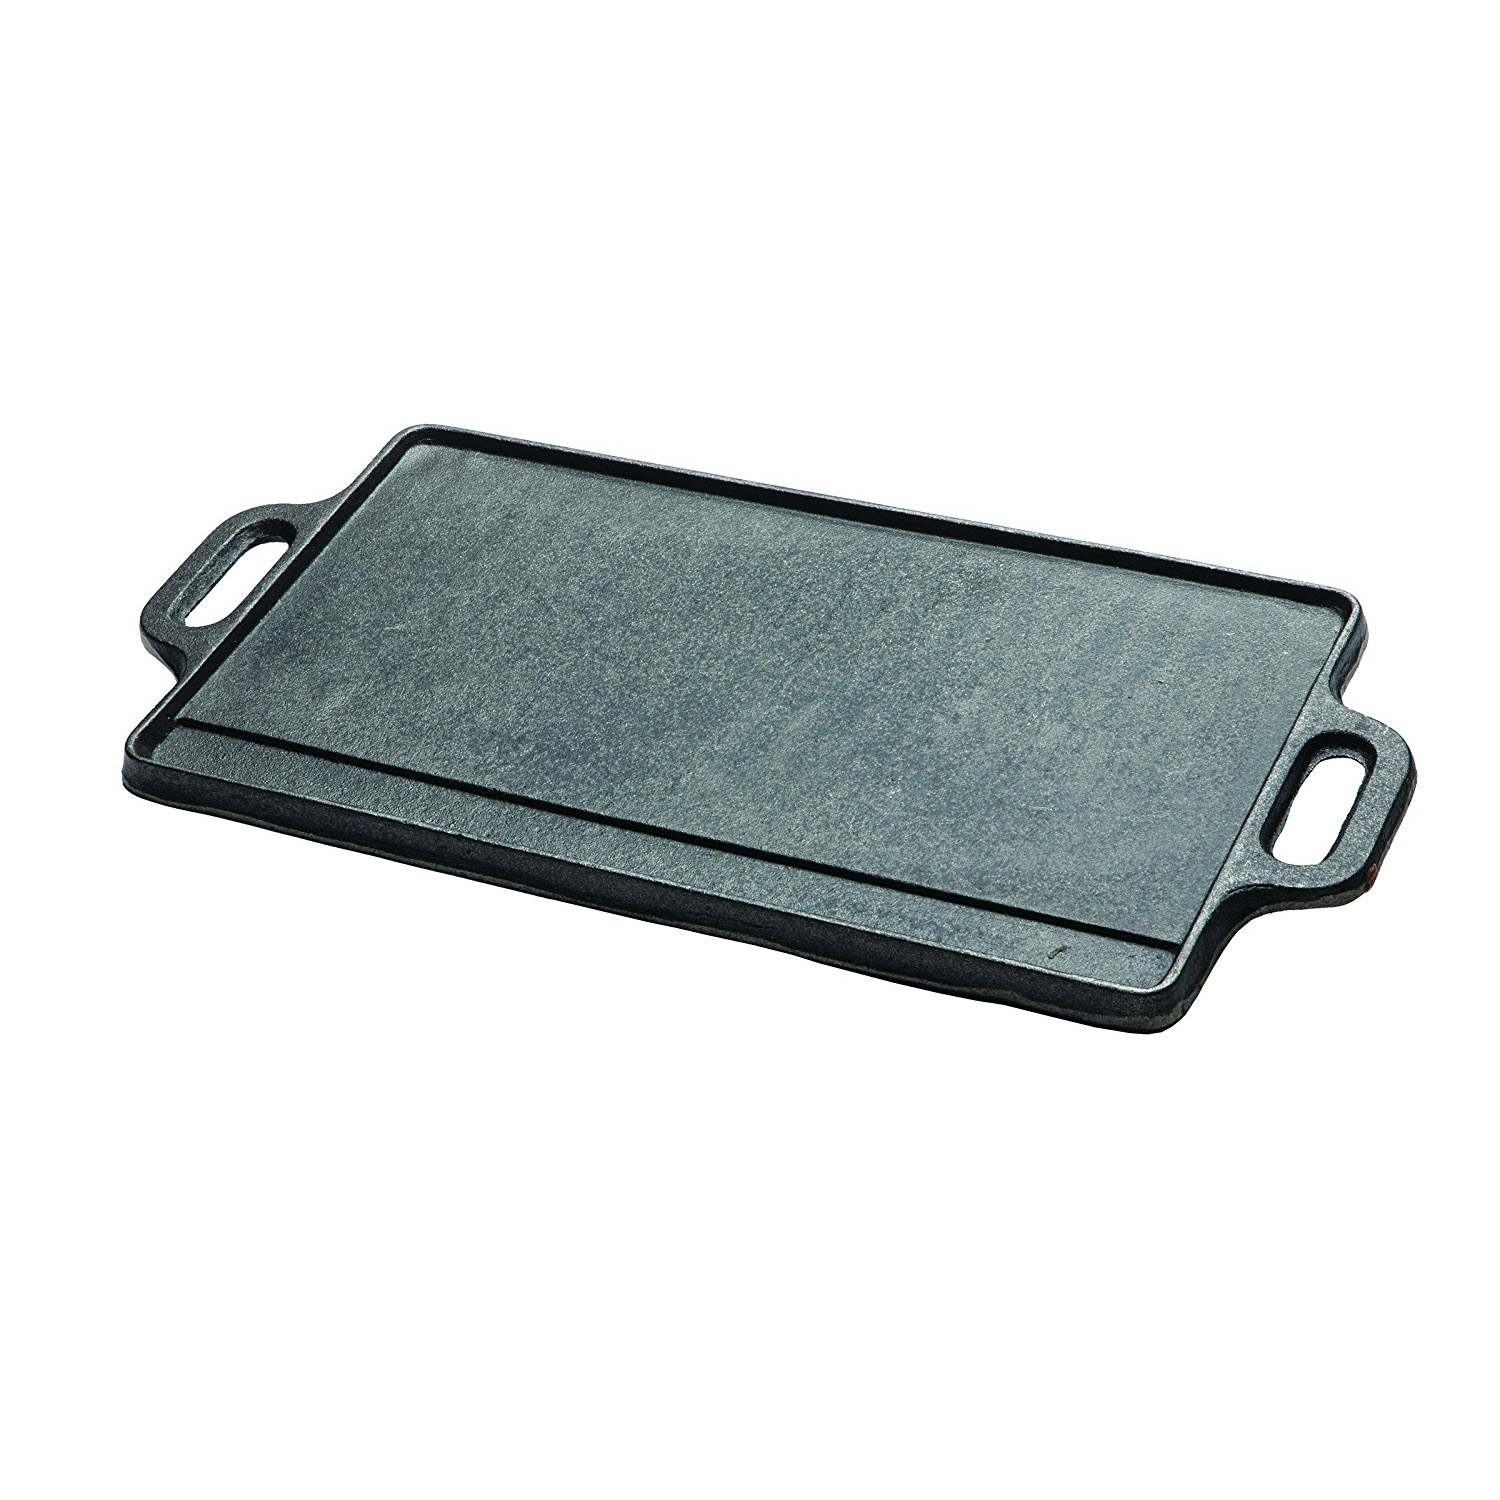 """Texsport Cast Iron Griddle, 9.5"""" x 20"""" by Texsport Inc."""